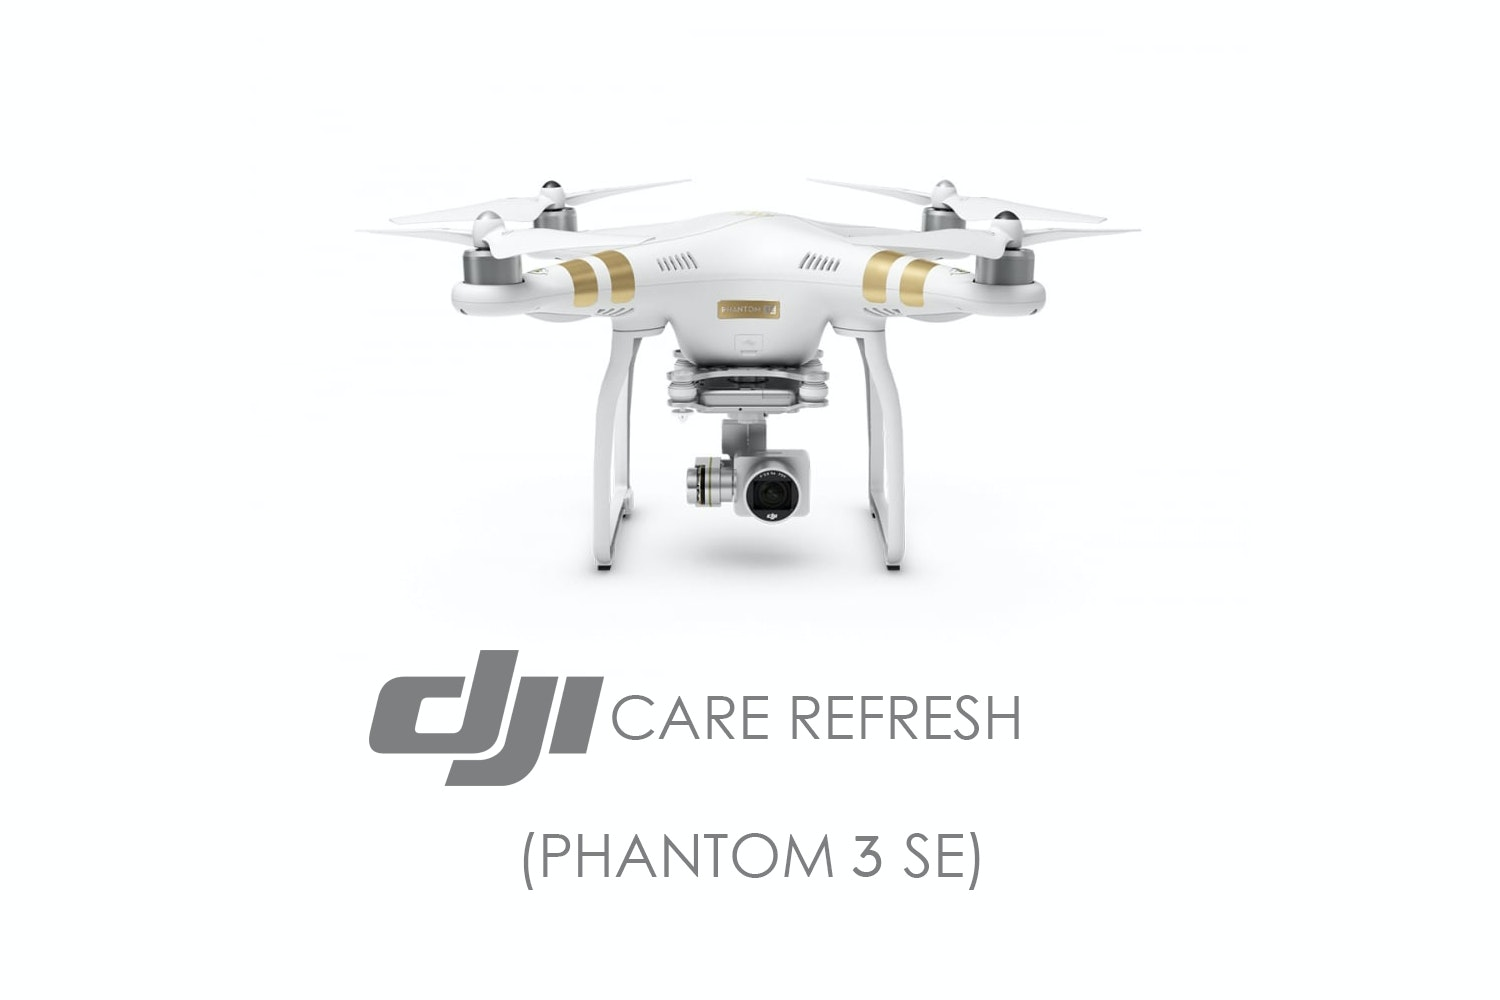 DJI Care Refresh Phantom 3 SE